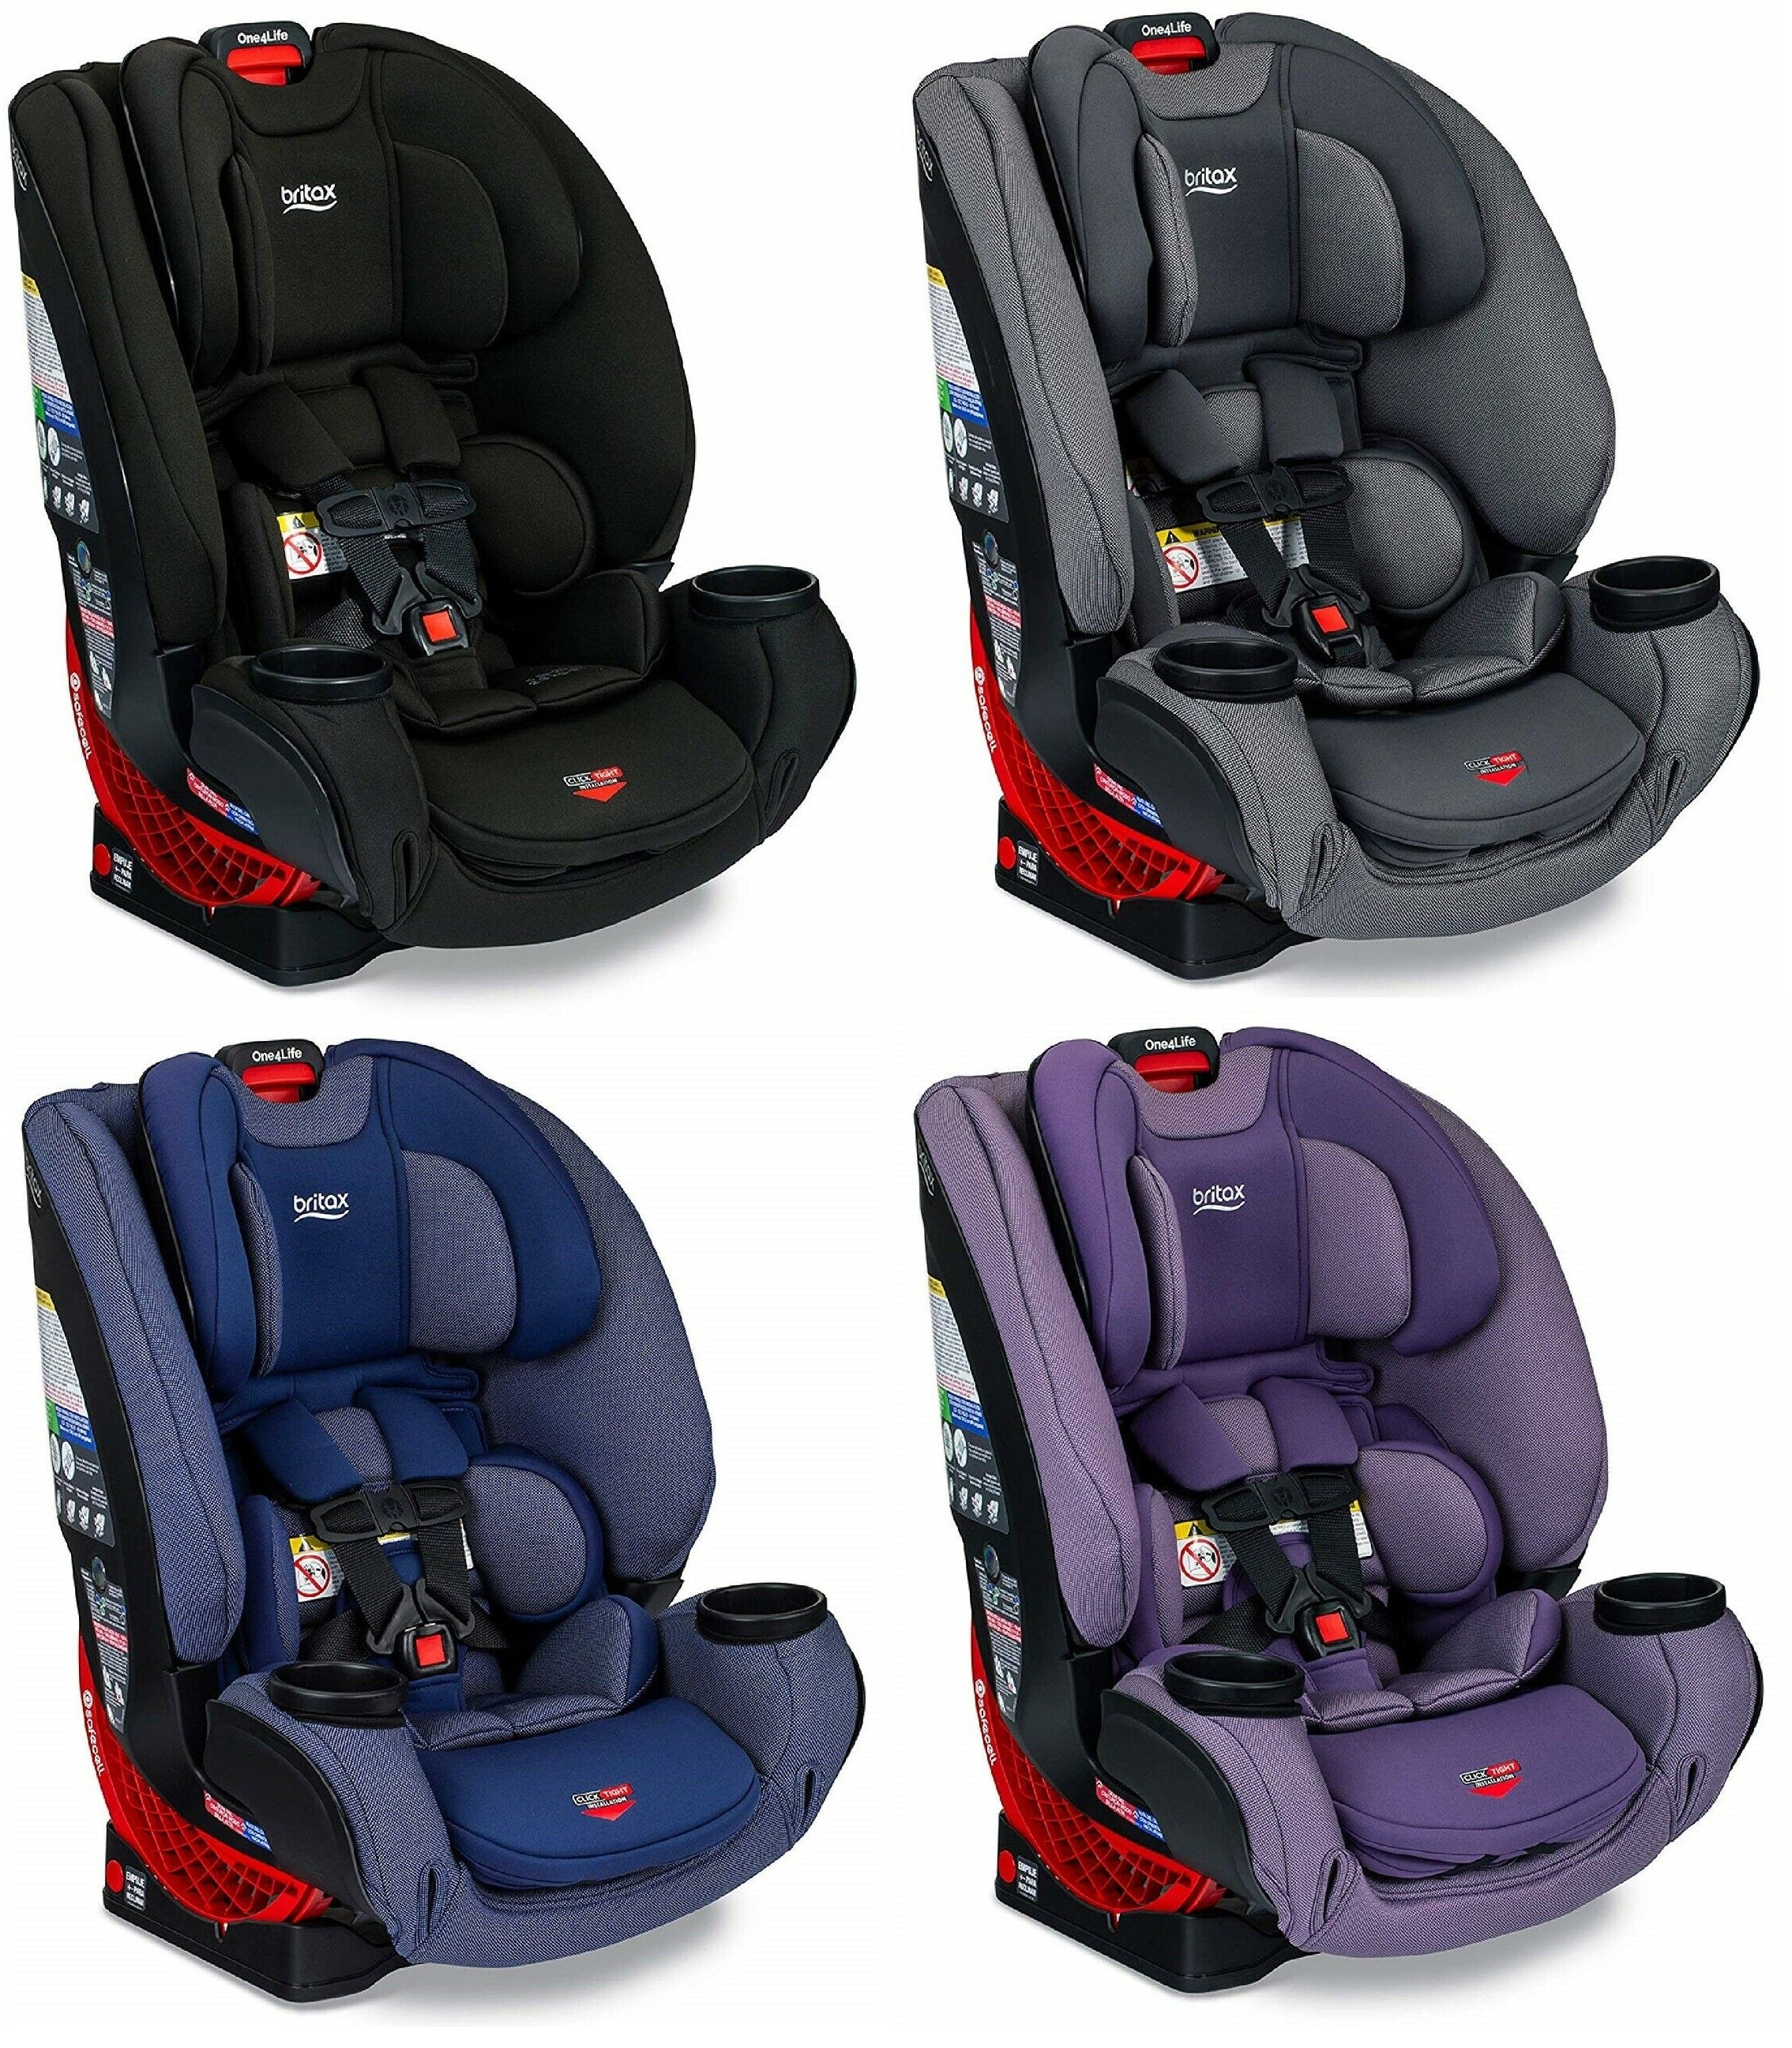 Awe Inspiring Britax One4Life Clicktight All In One Convertible Car Seat Eclipse Black Pdpeps Interior Chair Design Pdpepsorg